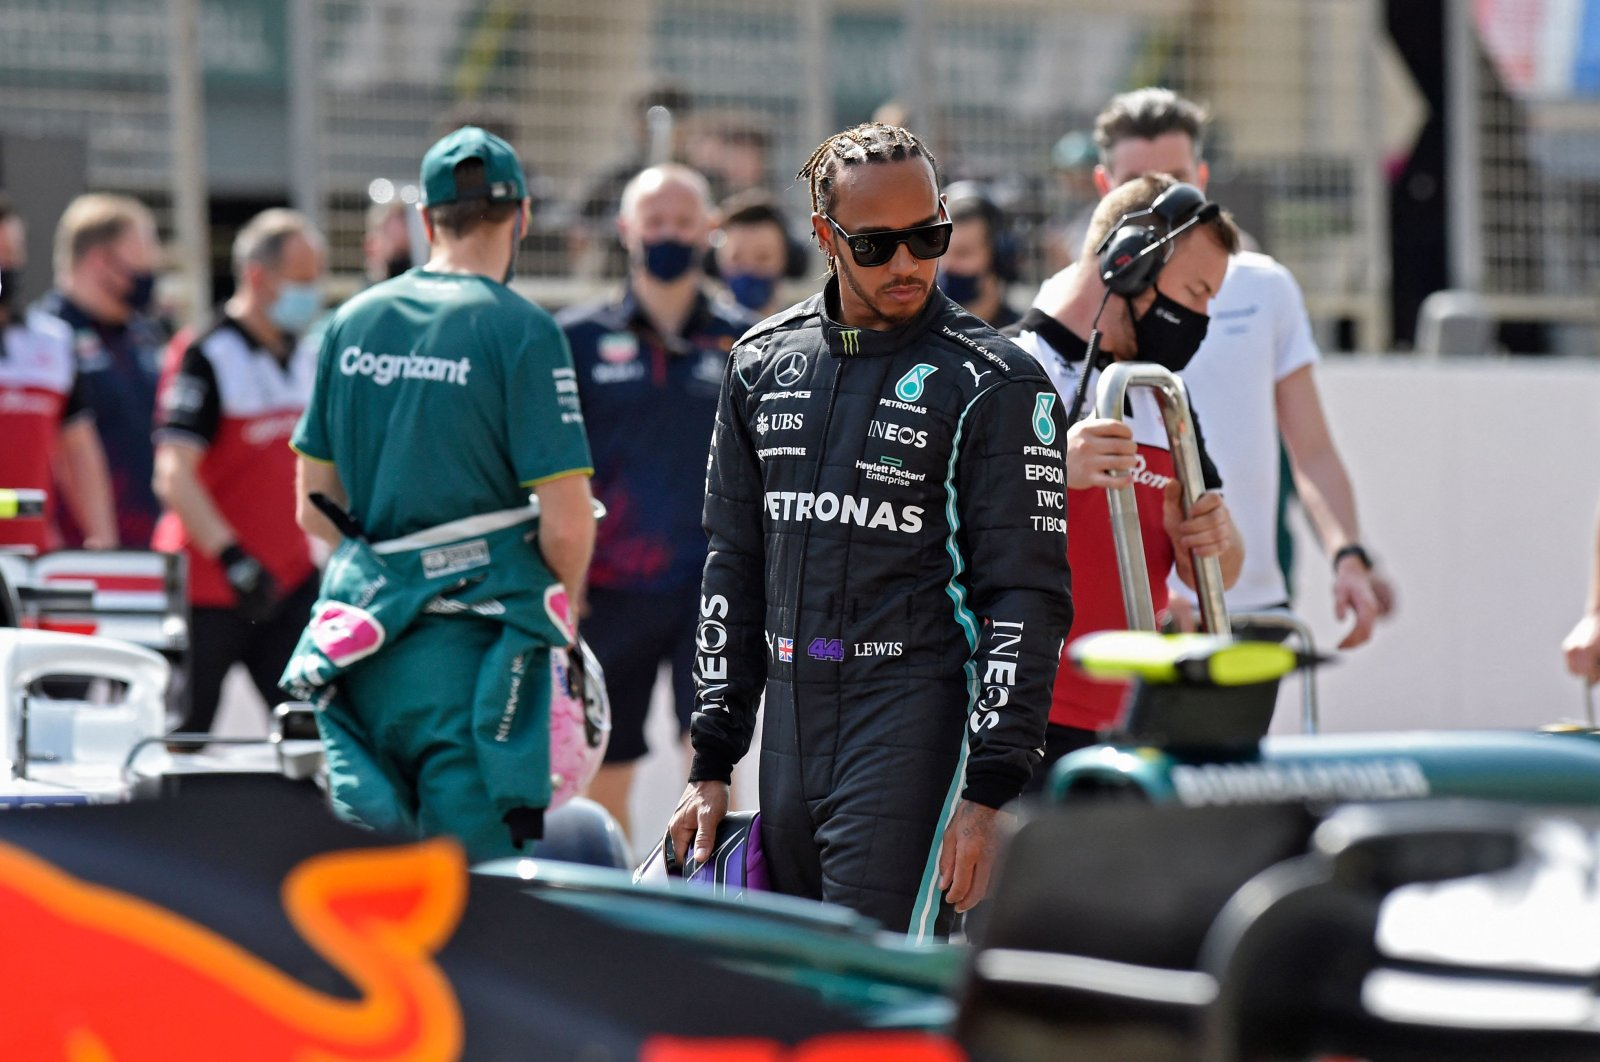 Mercedes' British driver Lewis Hamilton (C) looks on during the first day of the Formula One pre-season testing at the Bahrain International Circuit, Sakhir, Bahrain, March 12, 2021. (AFP Photo)